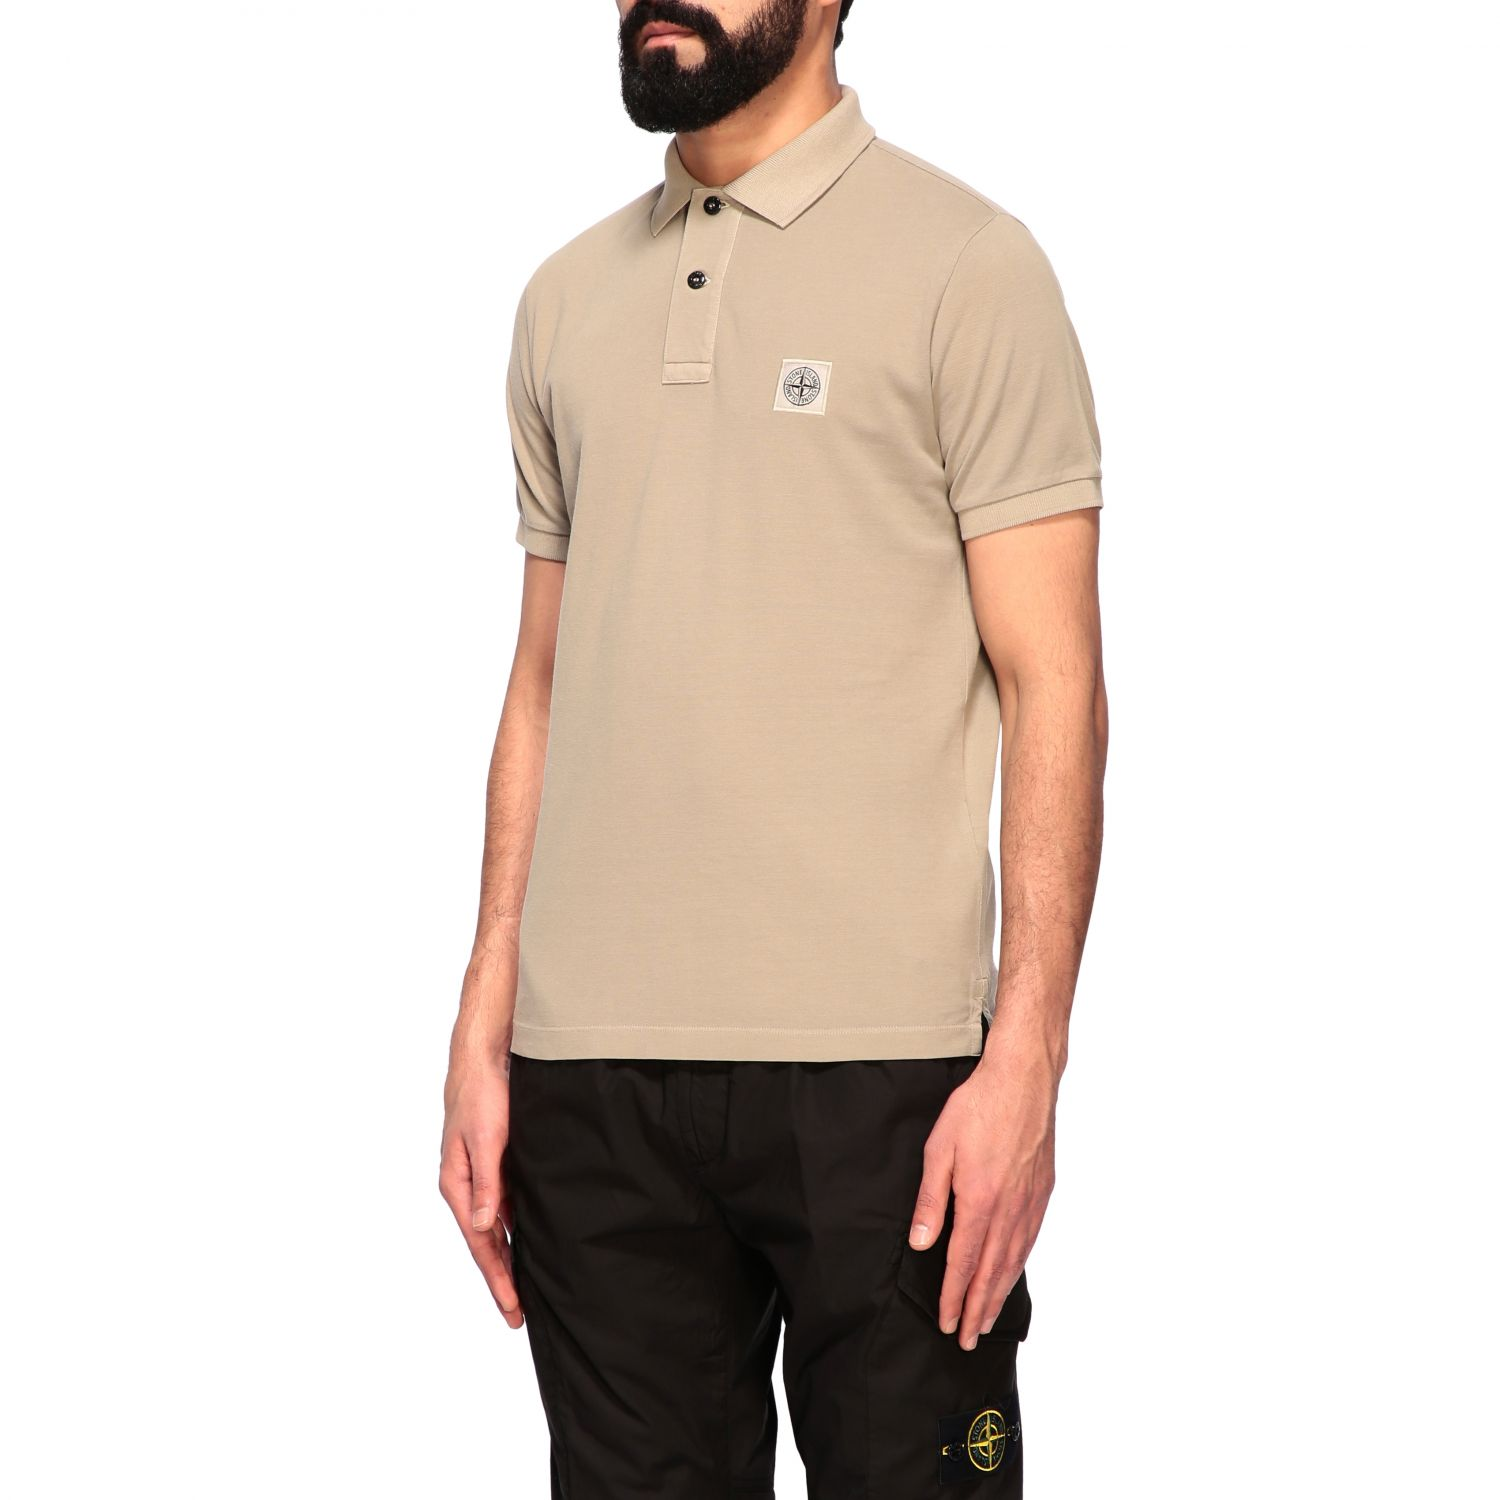 Stone Island short-sleeved polo shirt burnt 4